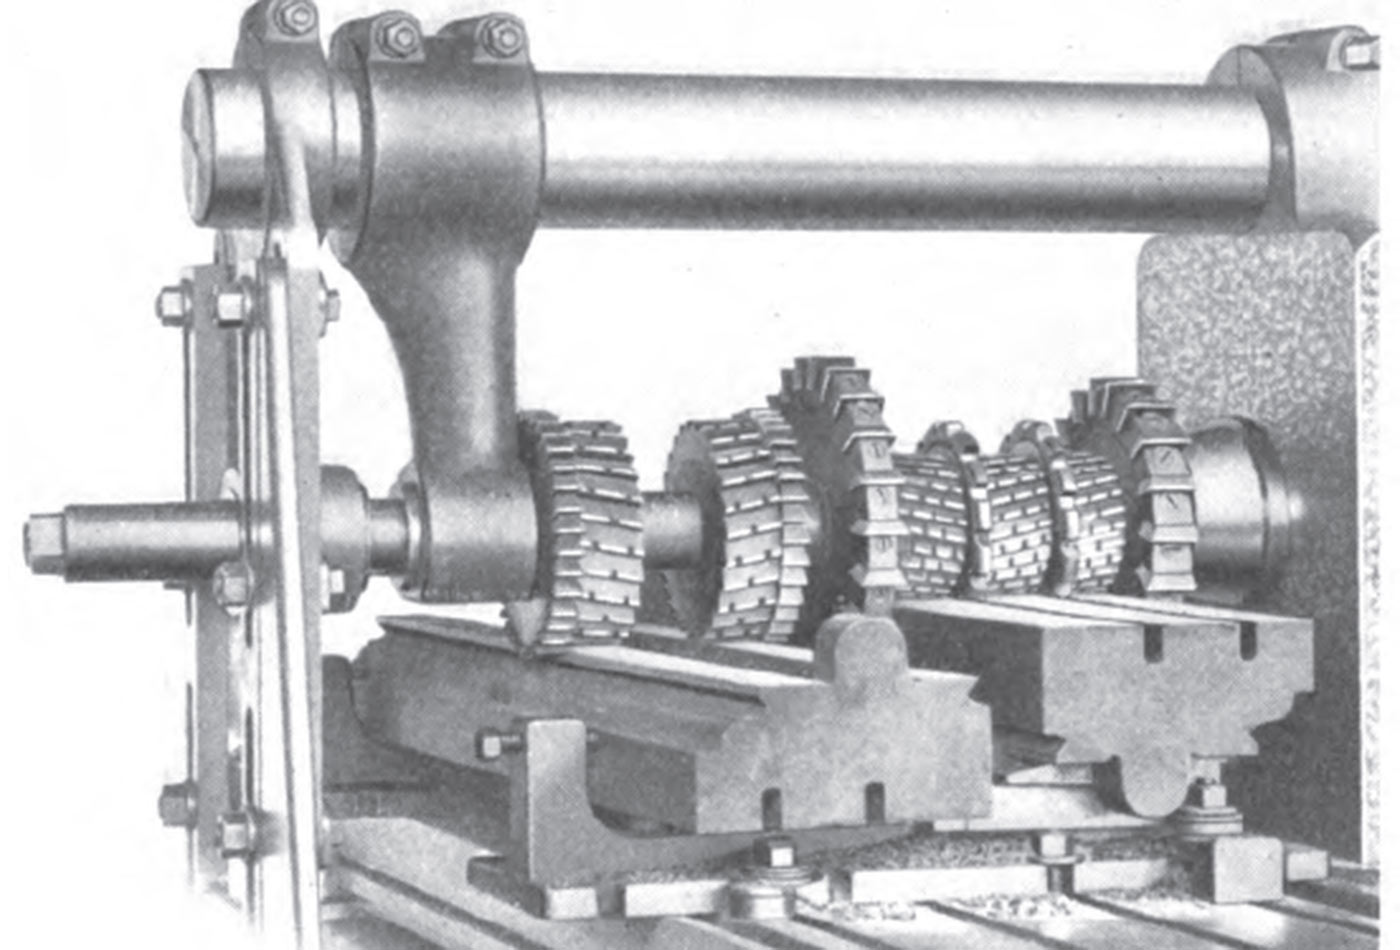 Practical Treatise on Milling and Milling Machines, page 138. 1919.